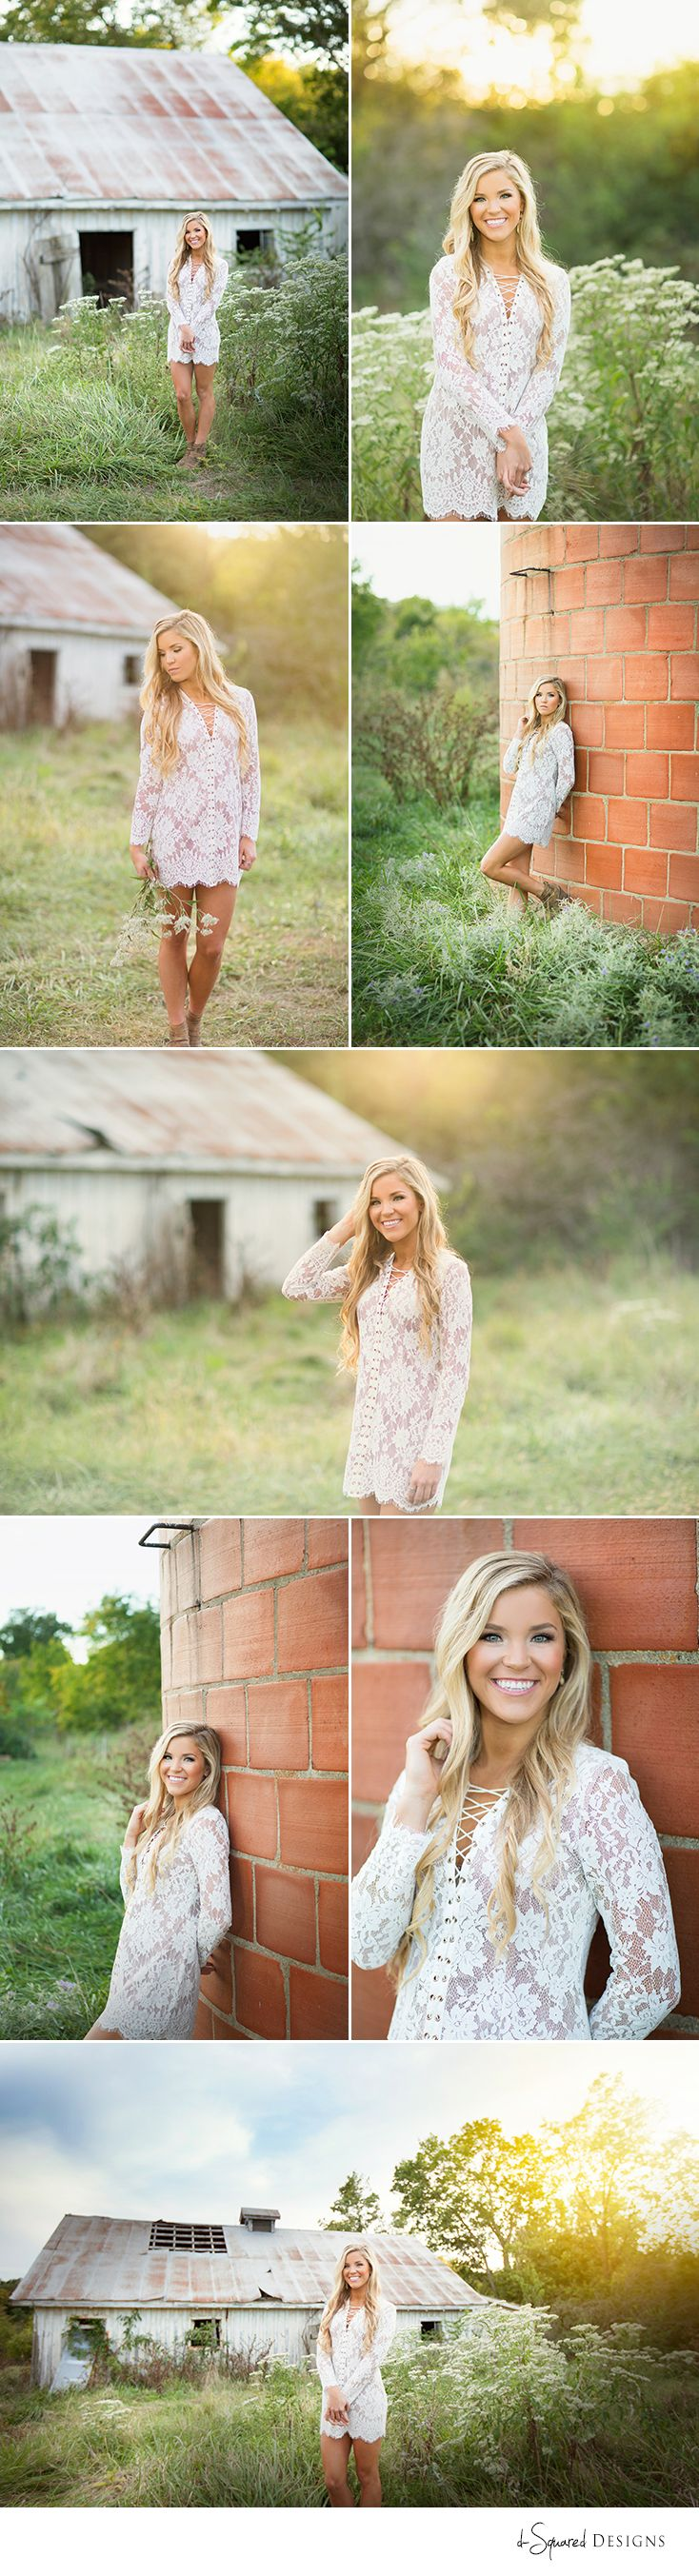 d-Squared Designs St. Louis, MO Senior Photography. Senior Photography. Beautiful girl. Country Senior Session.                                                                                                                                                     More